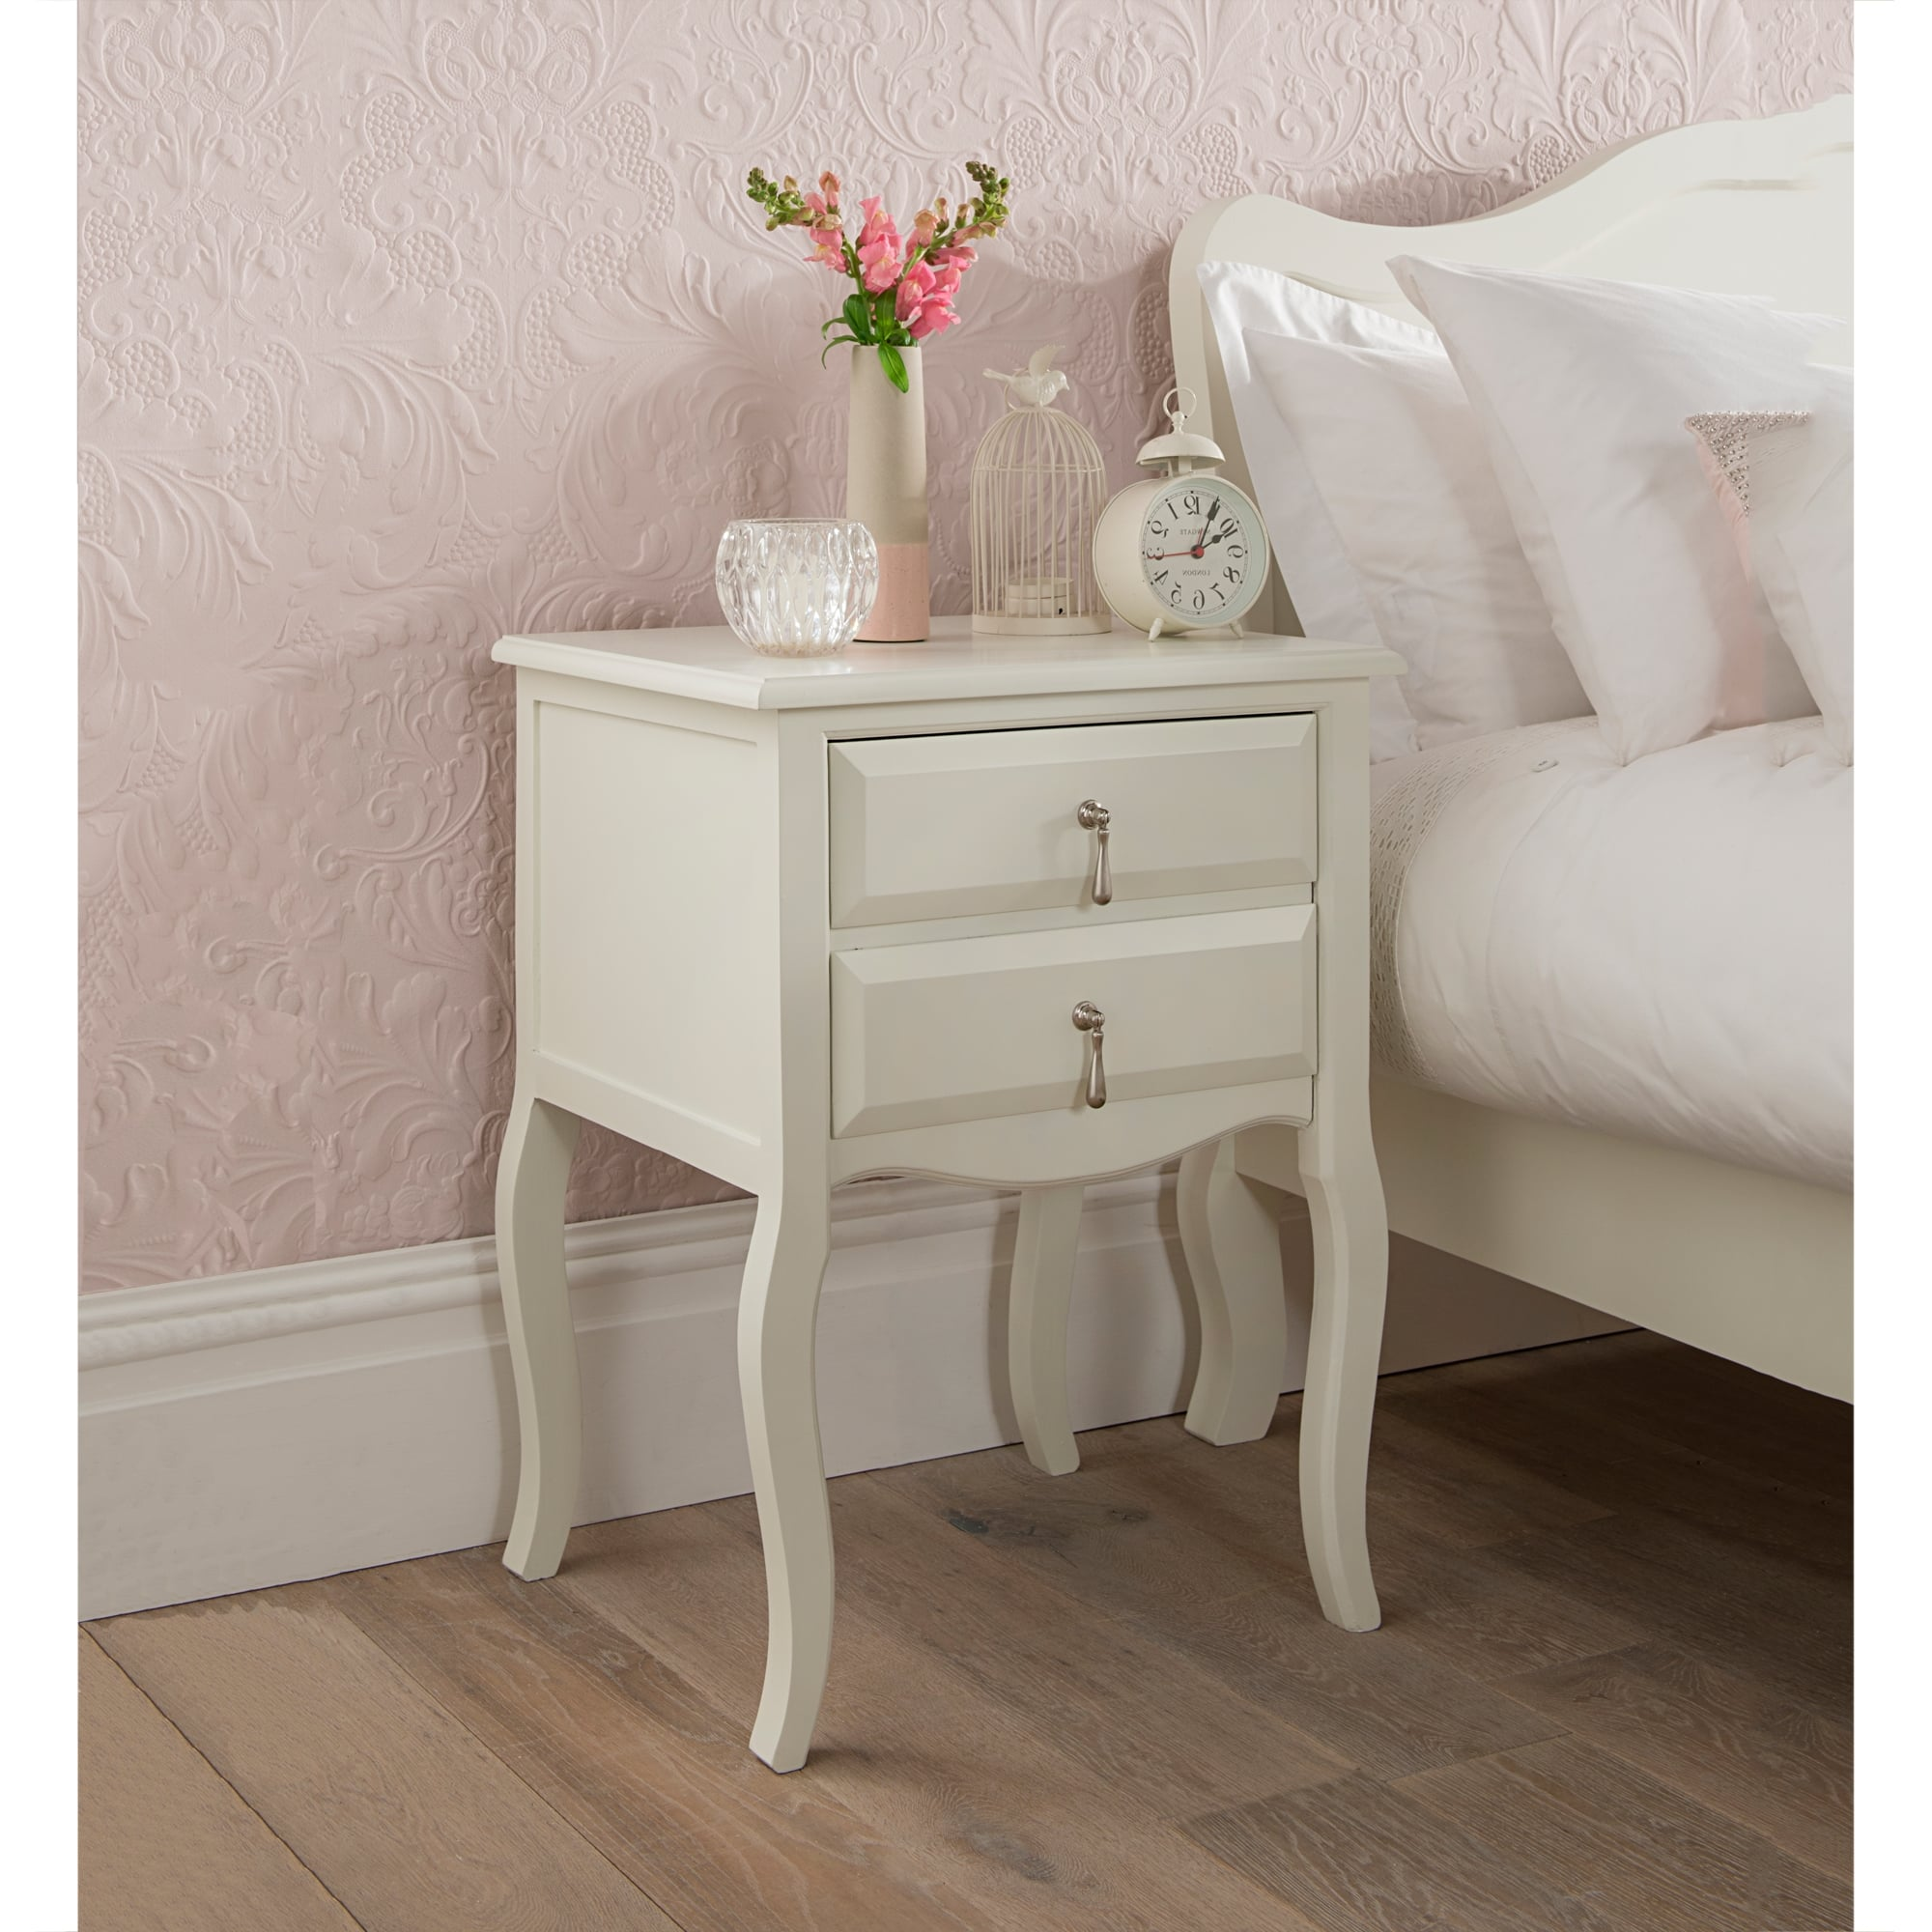 Antique French Style Bedside Table Bedroom Furniture